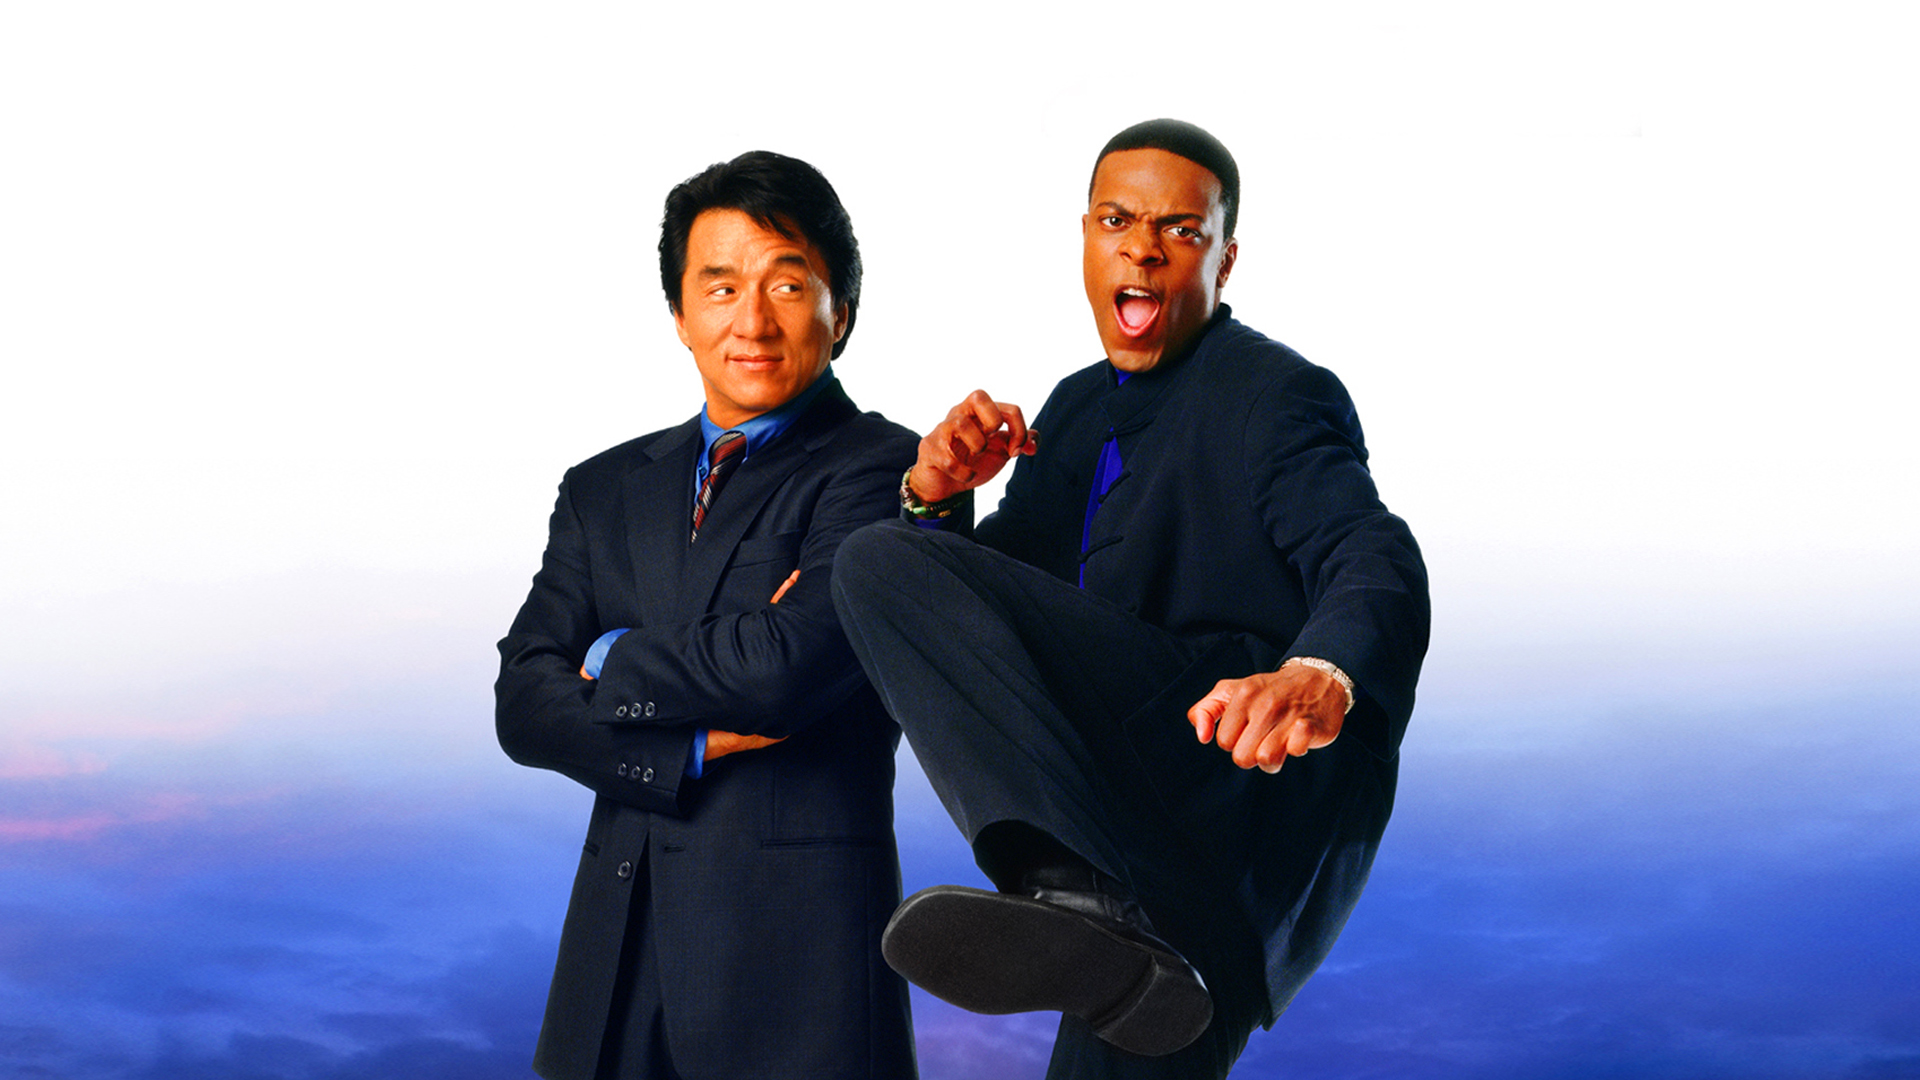 an analysis of characters in the movie rush hour 2 by brett ratner 4 film favorites: chris tucker collection (rush hour / rush hour 2 / rush beyond the movie a look at brett ratner evolution of a scene: analysis of.